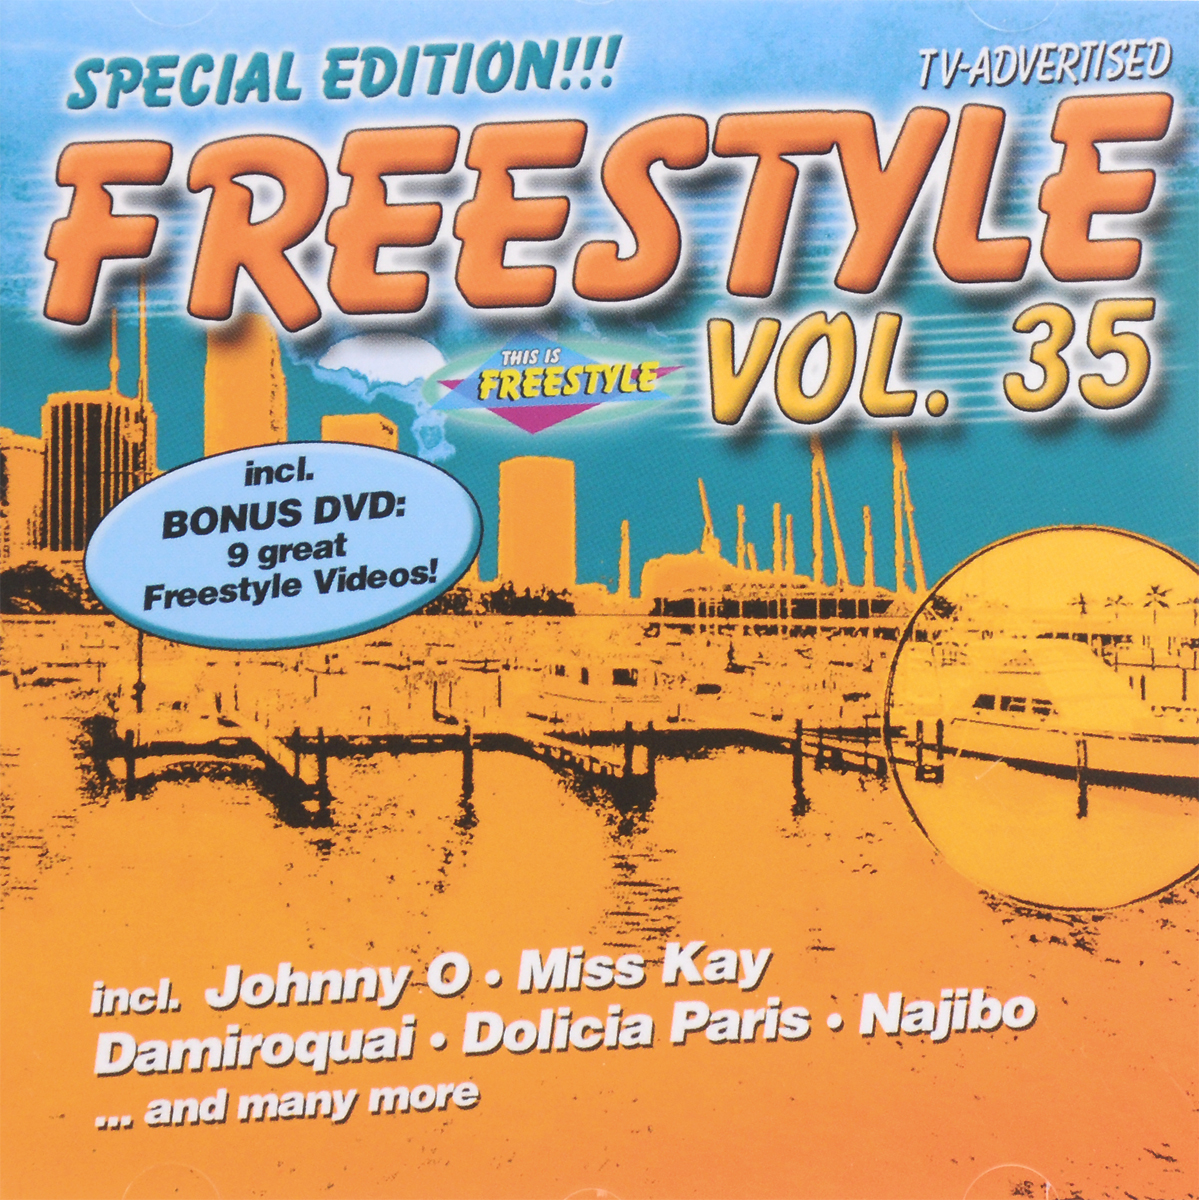 Miss Kay Freestyle Vol. 35. Special Edition (CD + DVD) johnny o rookie severin jayda soft touch лила грейс roxanna shineaz junior tiara suga mama x on jaylez maximnoise ники дэниэлс duap mc ричи сантьяго freestyle vol 40 best of final edition 3 cd